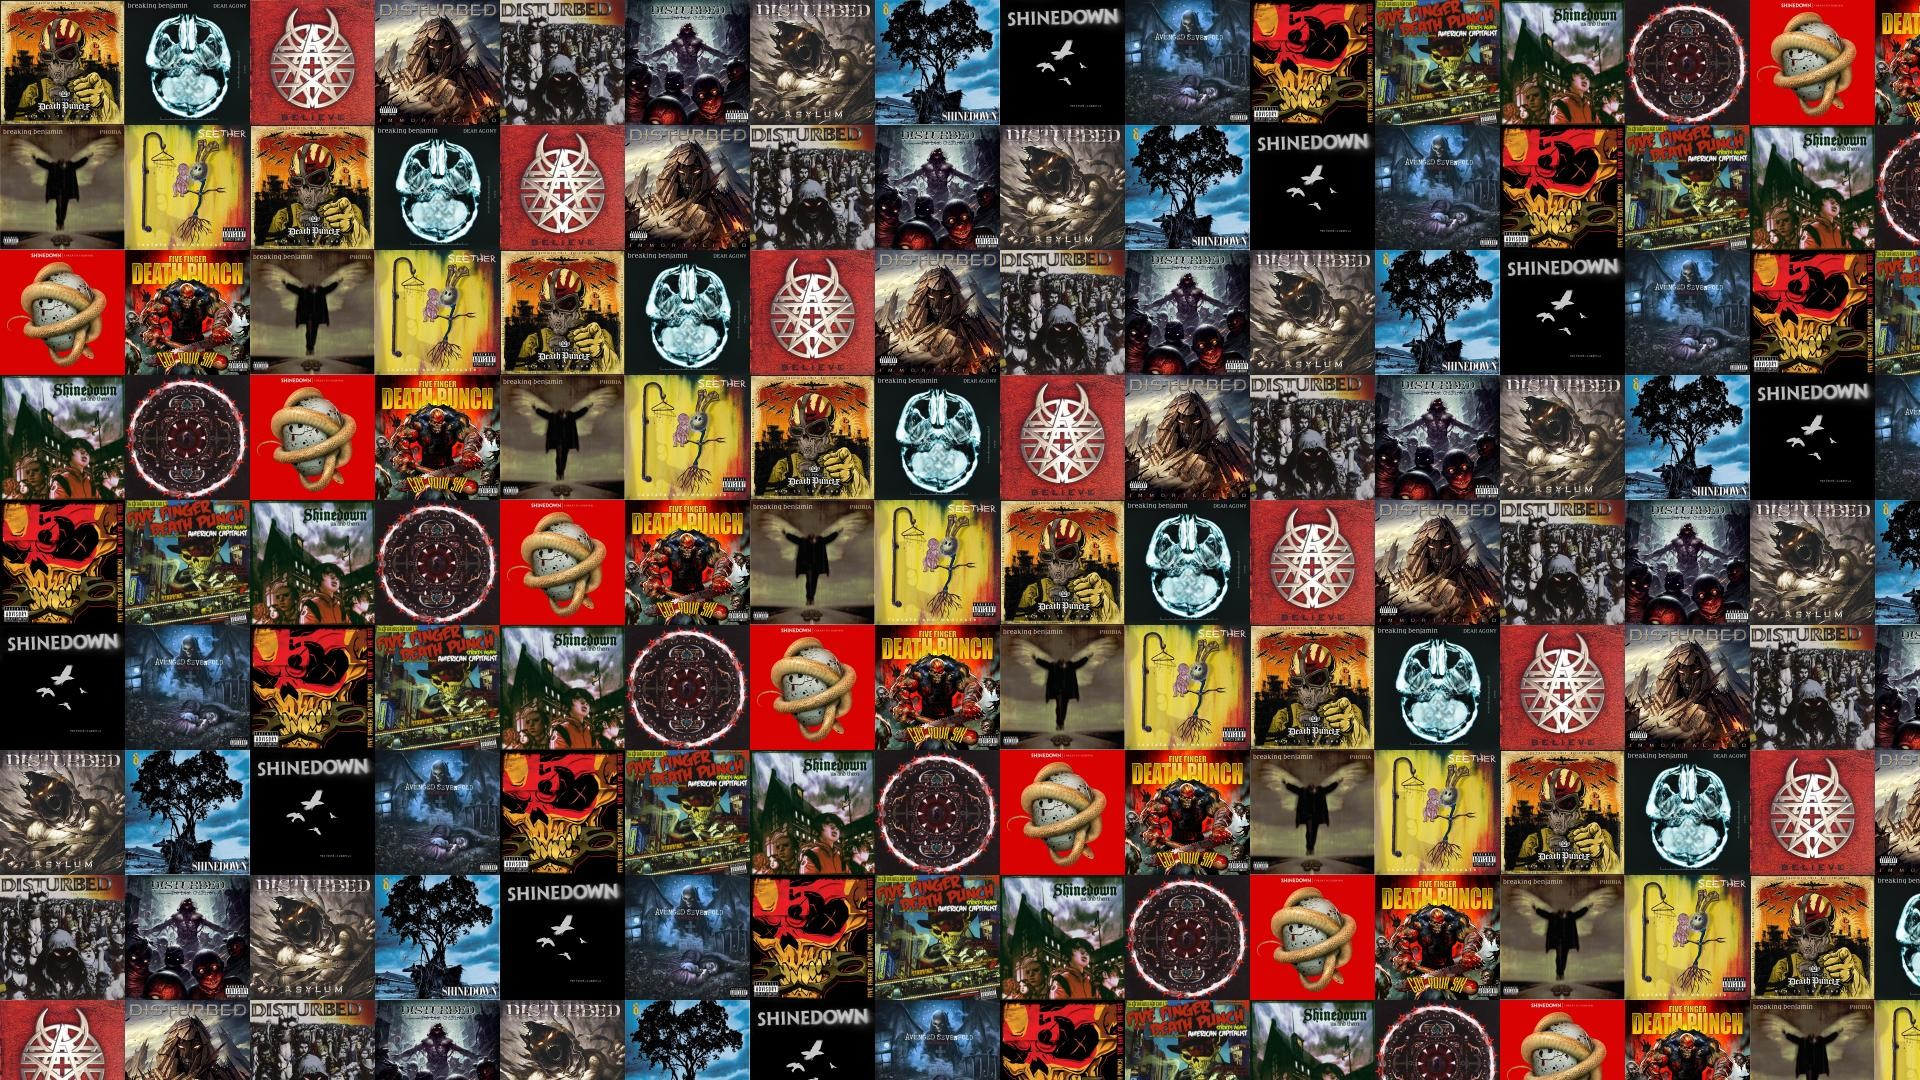 1920x1080 Download this free wallpaper with images of Five Finger Death Punch – War  Is The Answer, Breaking Benjamin – Dear Agony, Disturbed – Beleive, ...